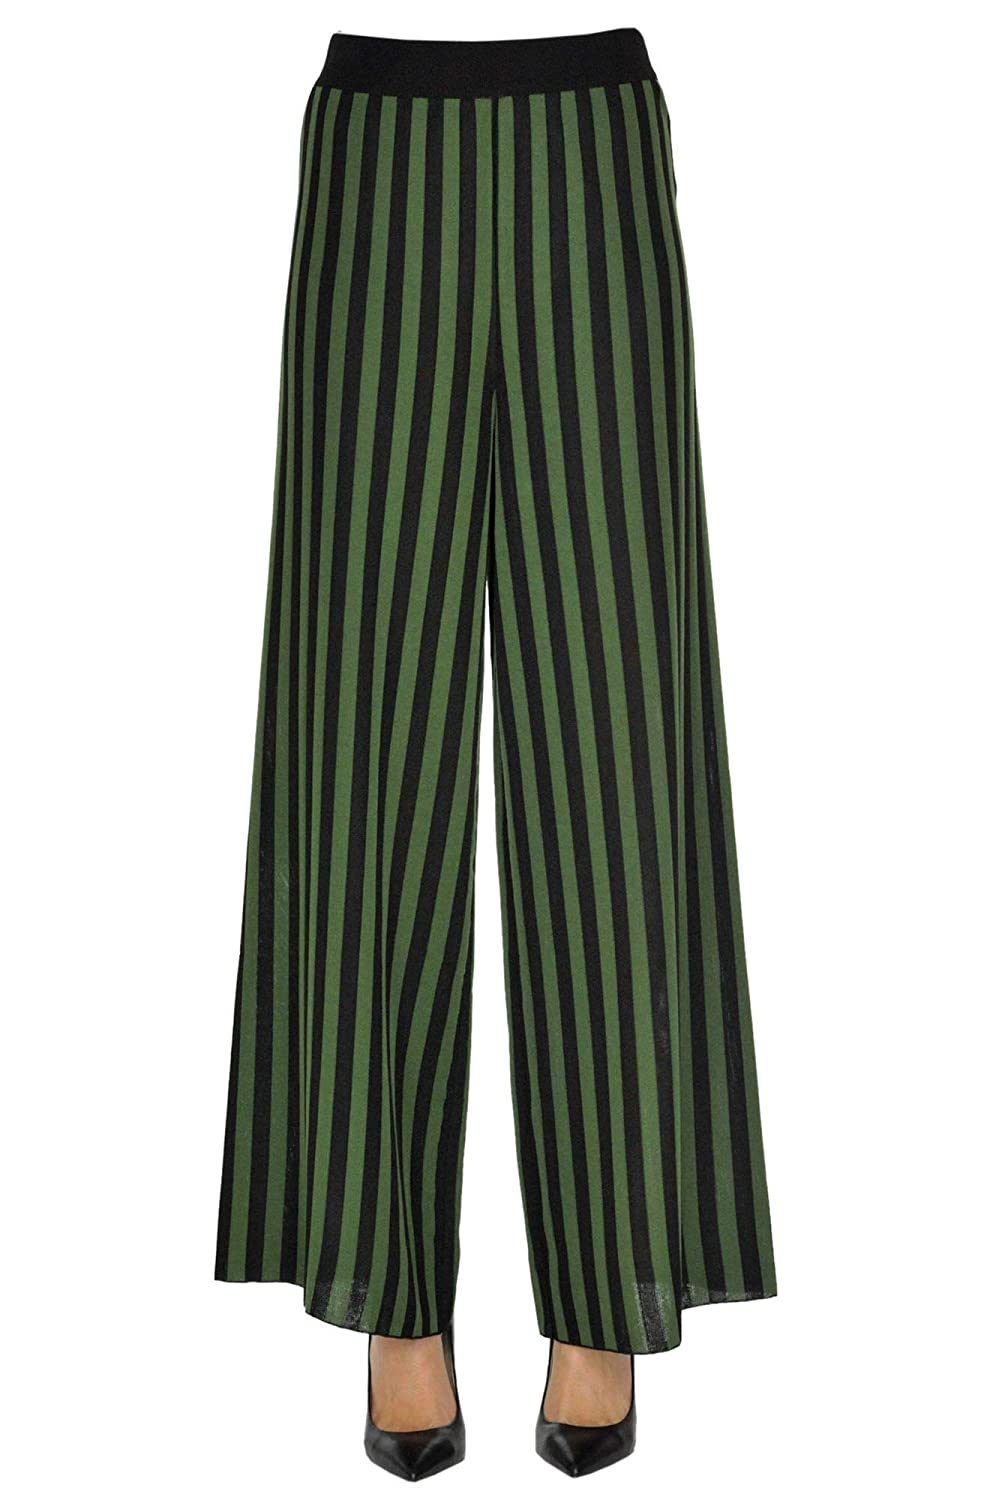 So.Be Women's MCGLPNP000005025E Green Viscose Pants